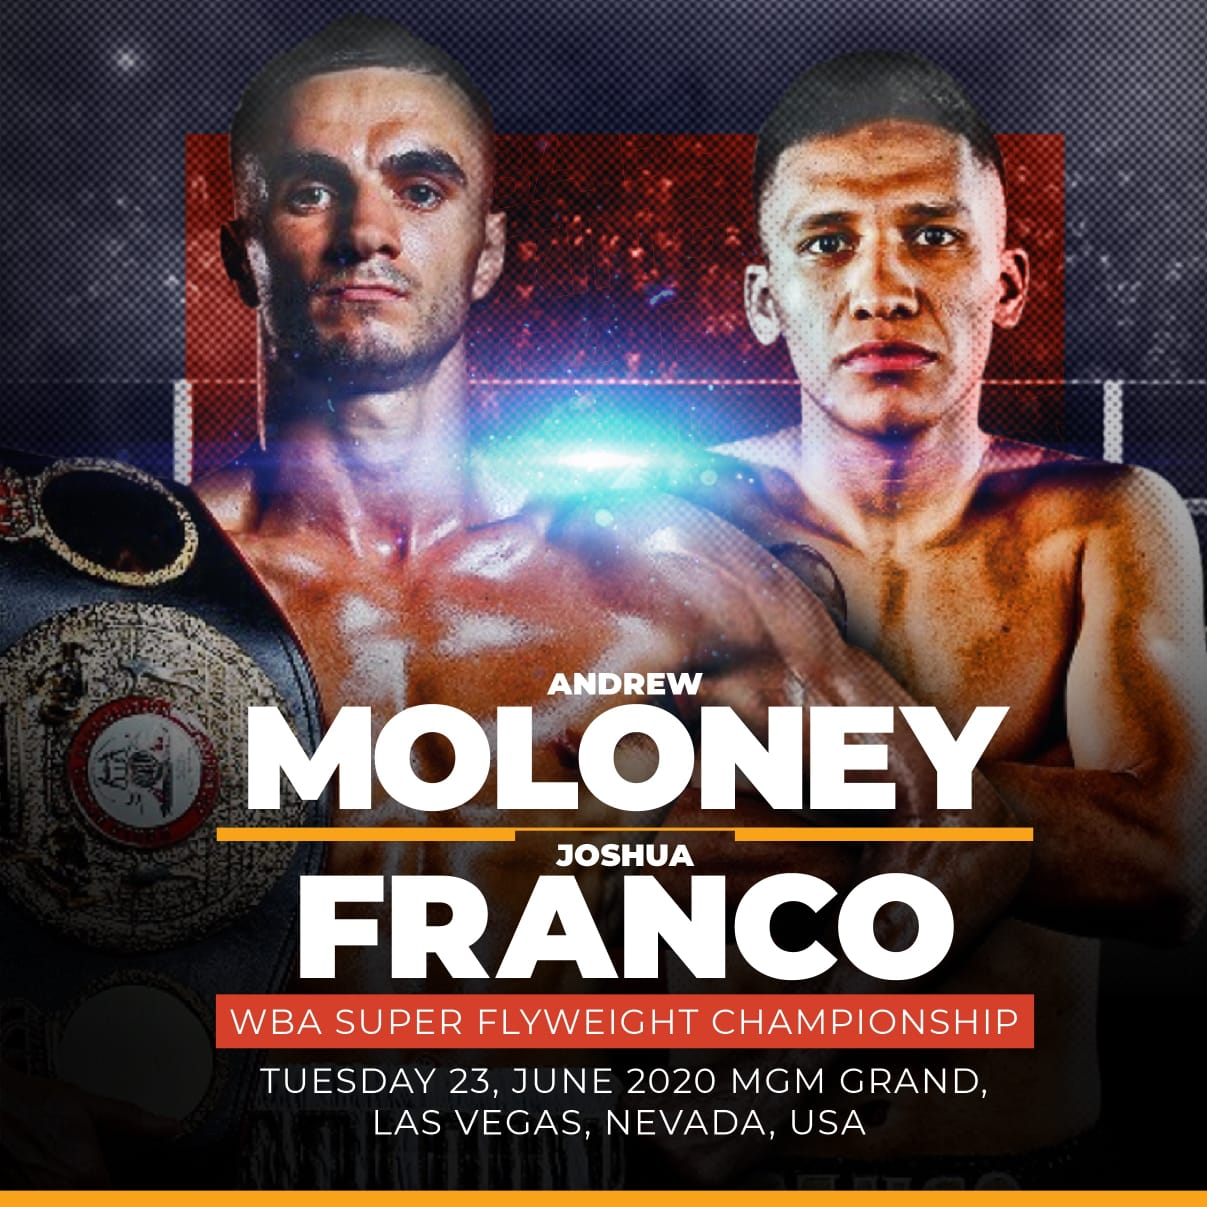 Moloney will be the first World Champion back in the ring tonight